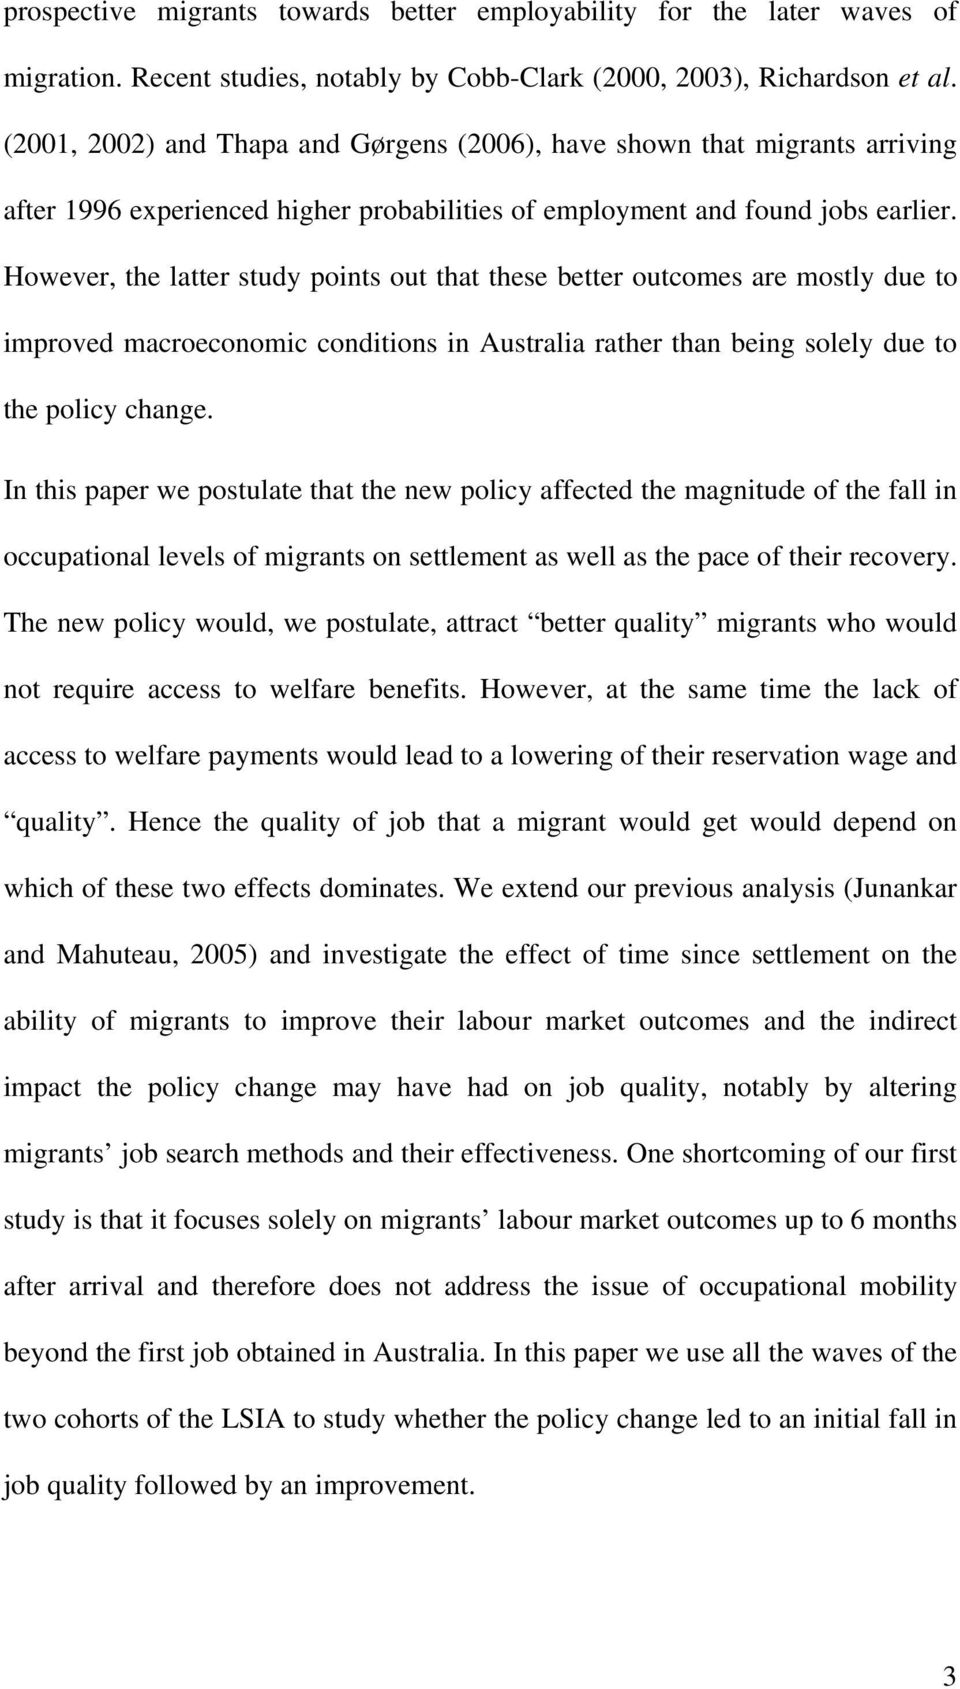 However, the latter study points out that these better outcomes are mostly due to improved macroeconomic conditions in Australia rather than being solely due to the policy change.